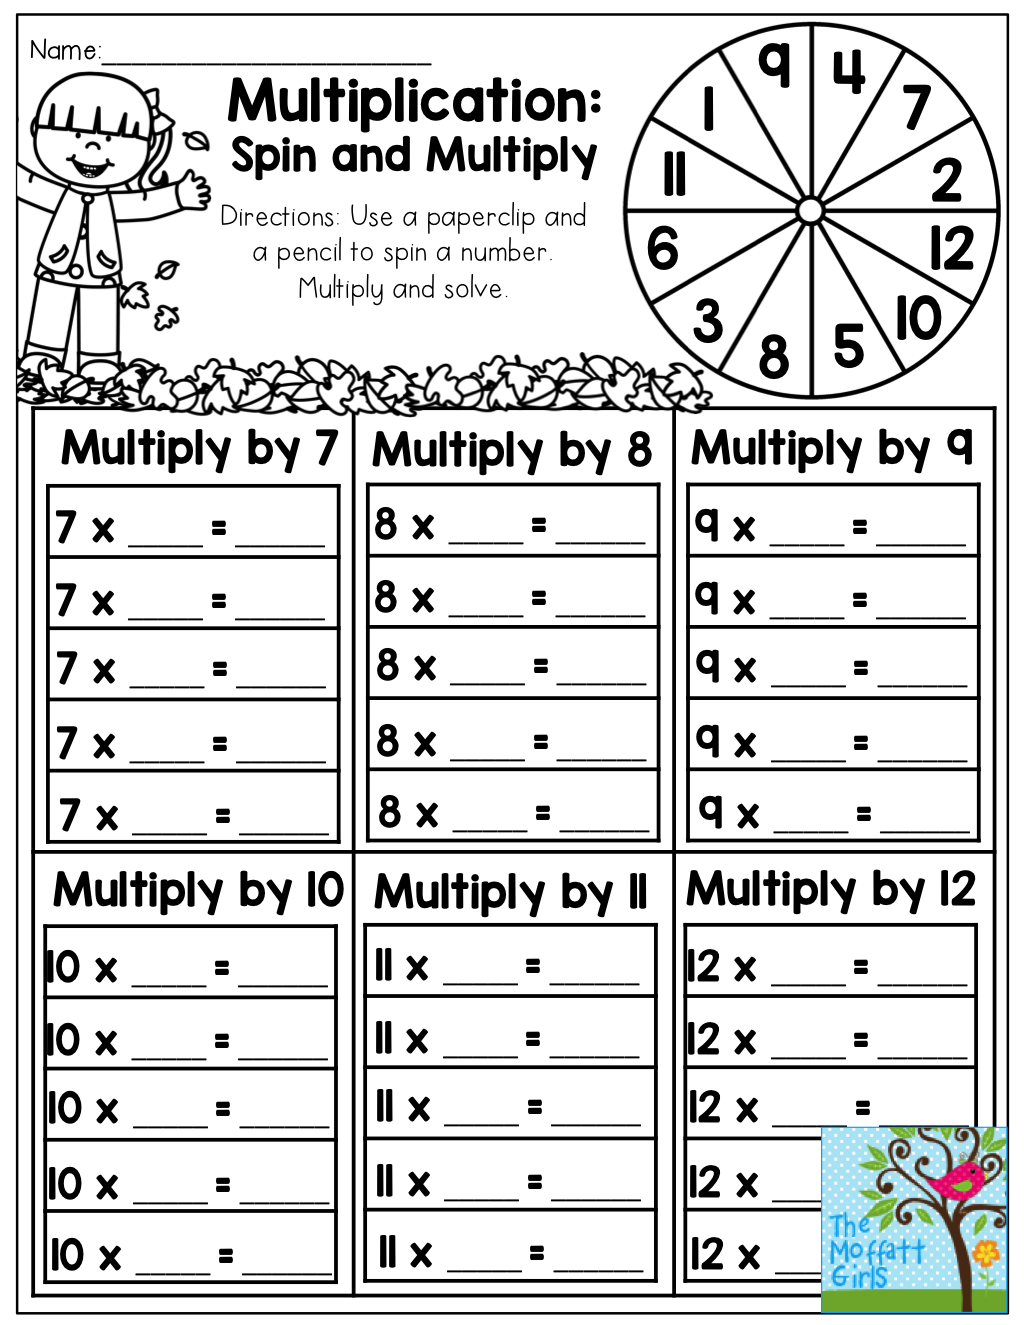 Multiplication Spin And Multiply 7 12 Tons Of